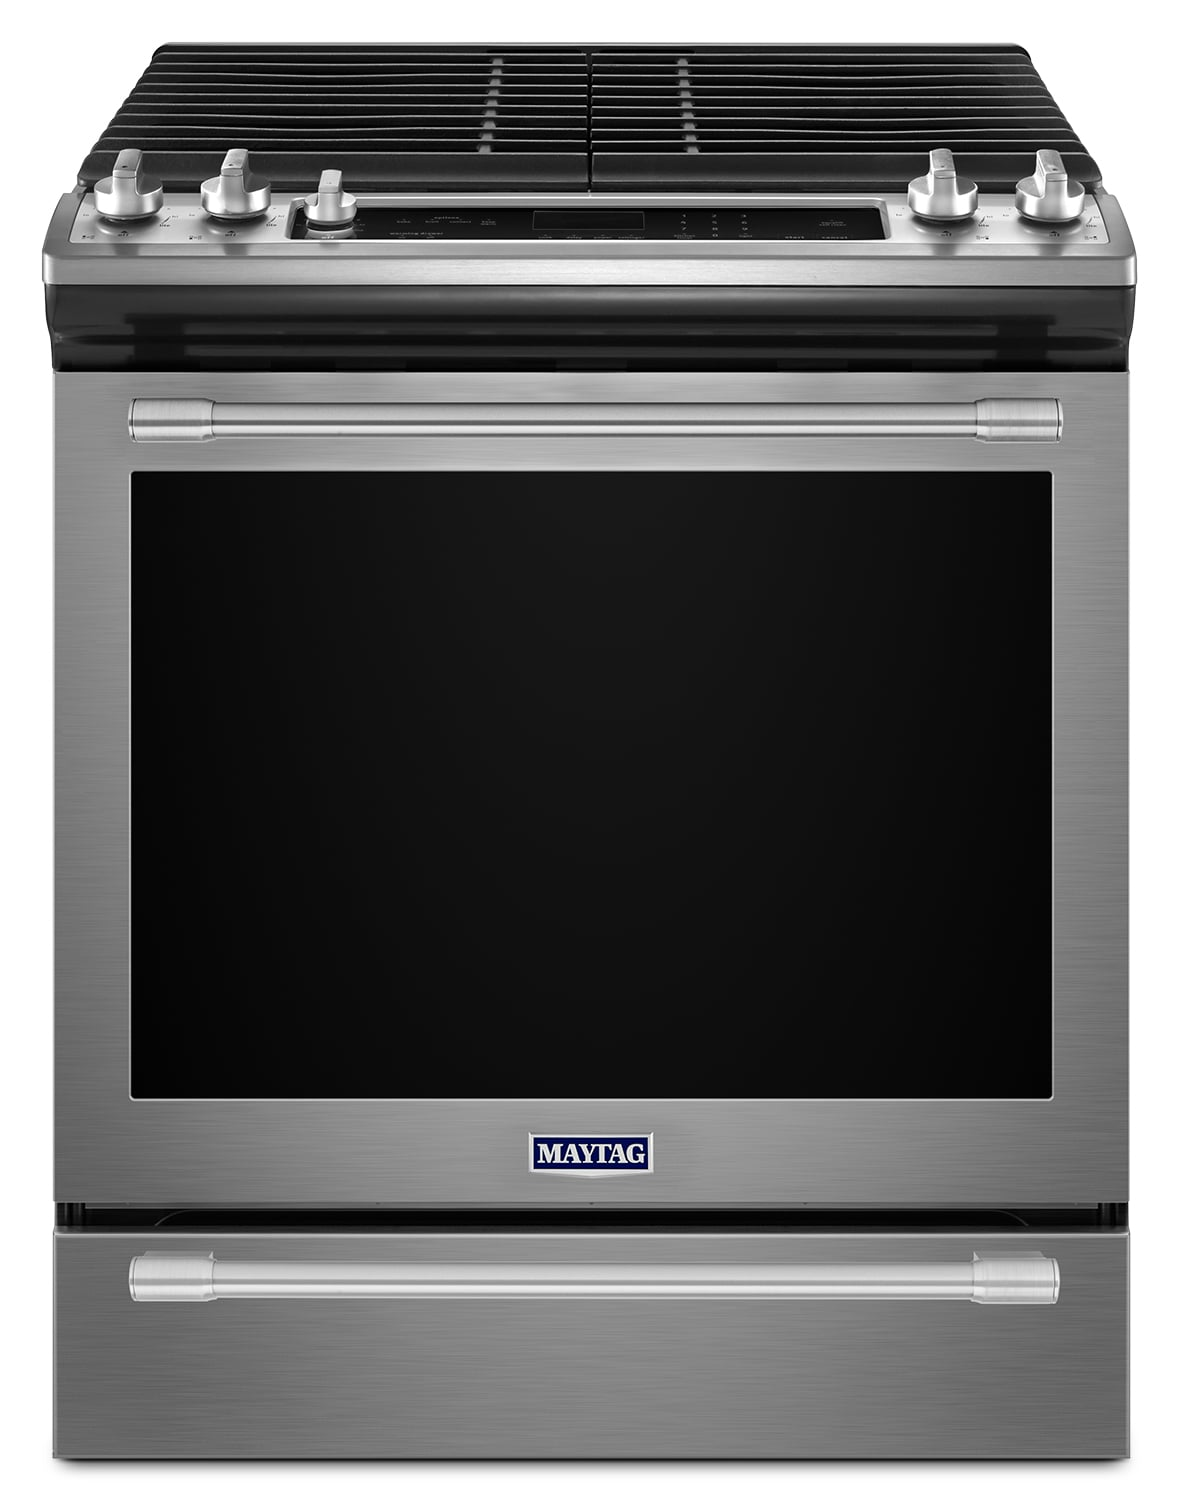 Which Businesses Offer Gas Range Repairs For Maytag